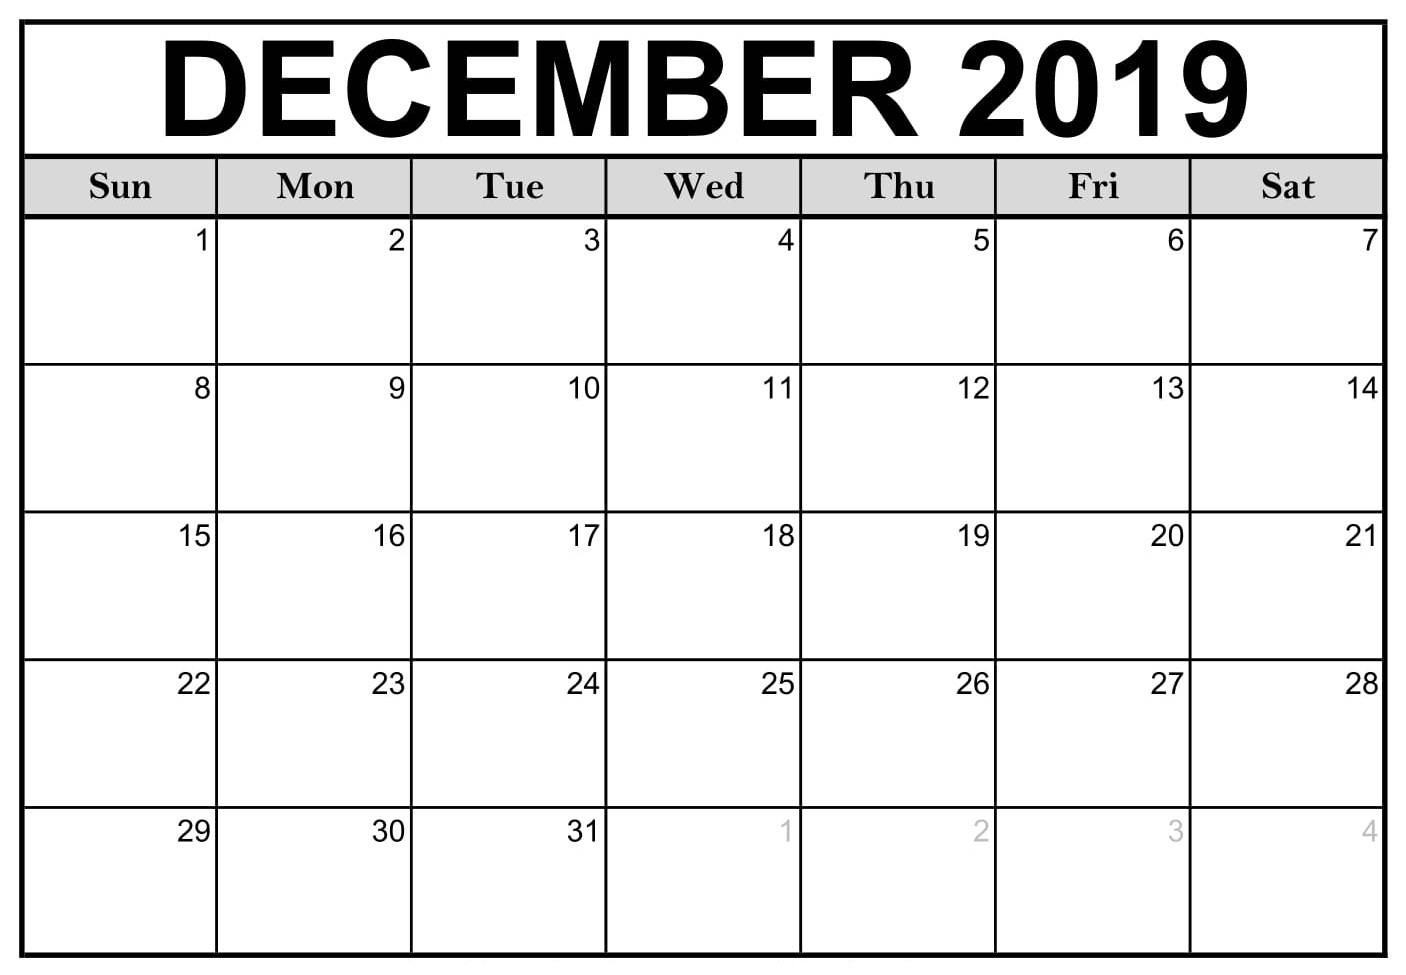 Free Printable December 2019 Calendar Notes - 2019 Calendars-December Canada Printable Calendar Free Monthly